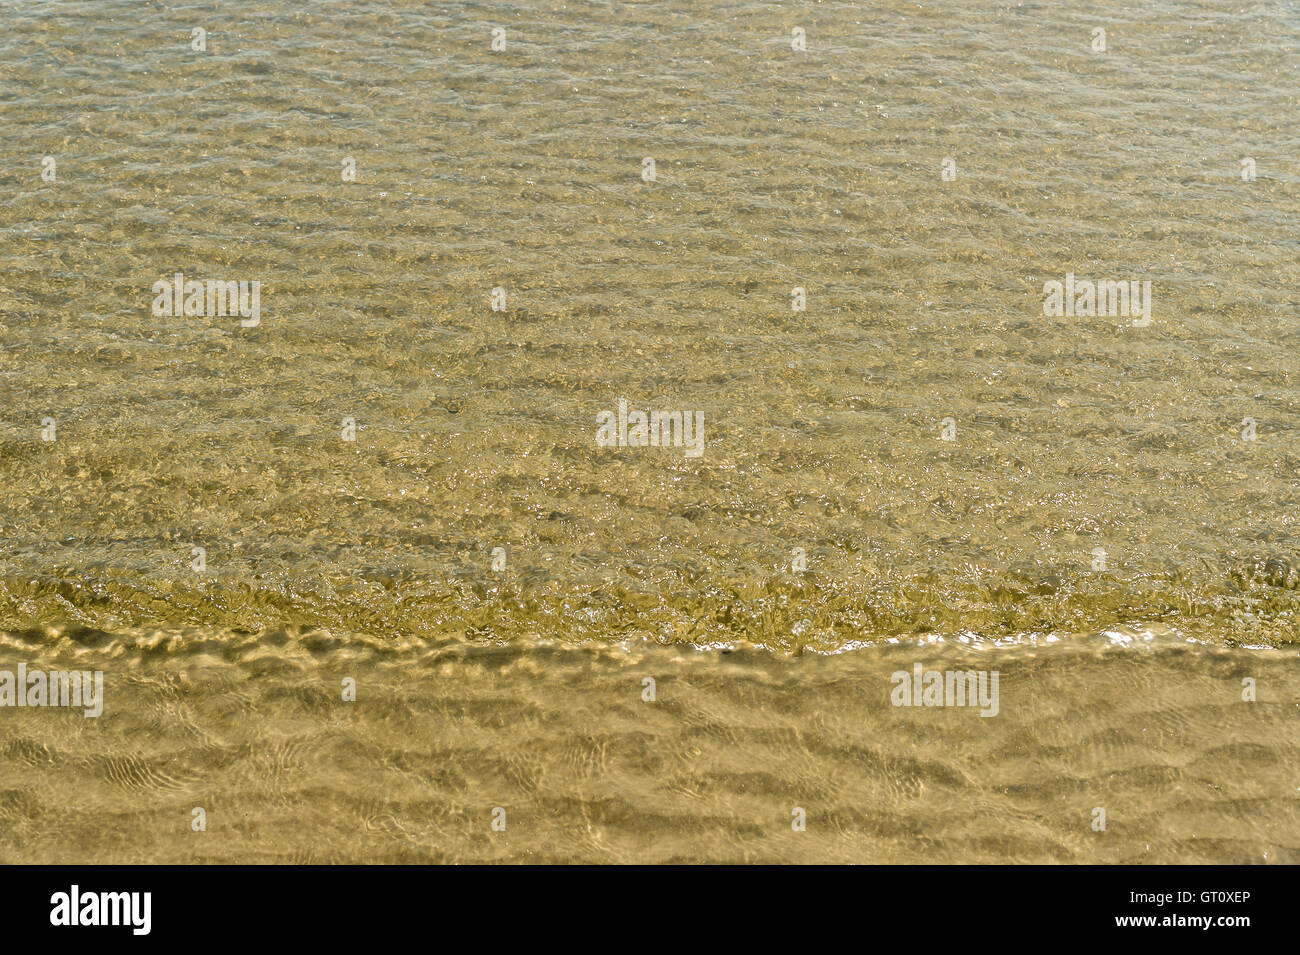 transparent water ripple wave track on beach - Stock Image